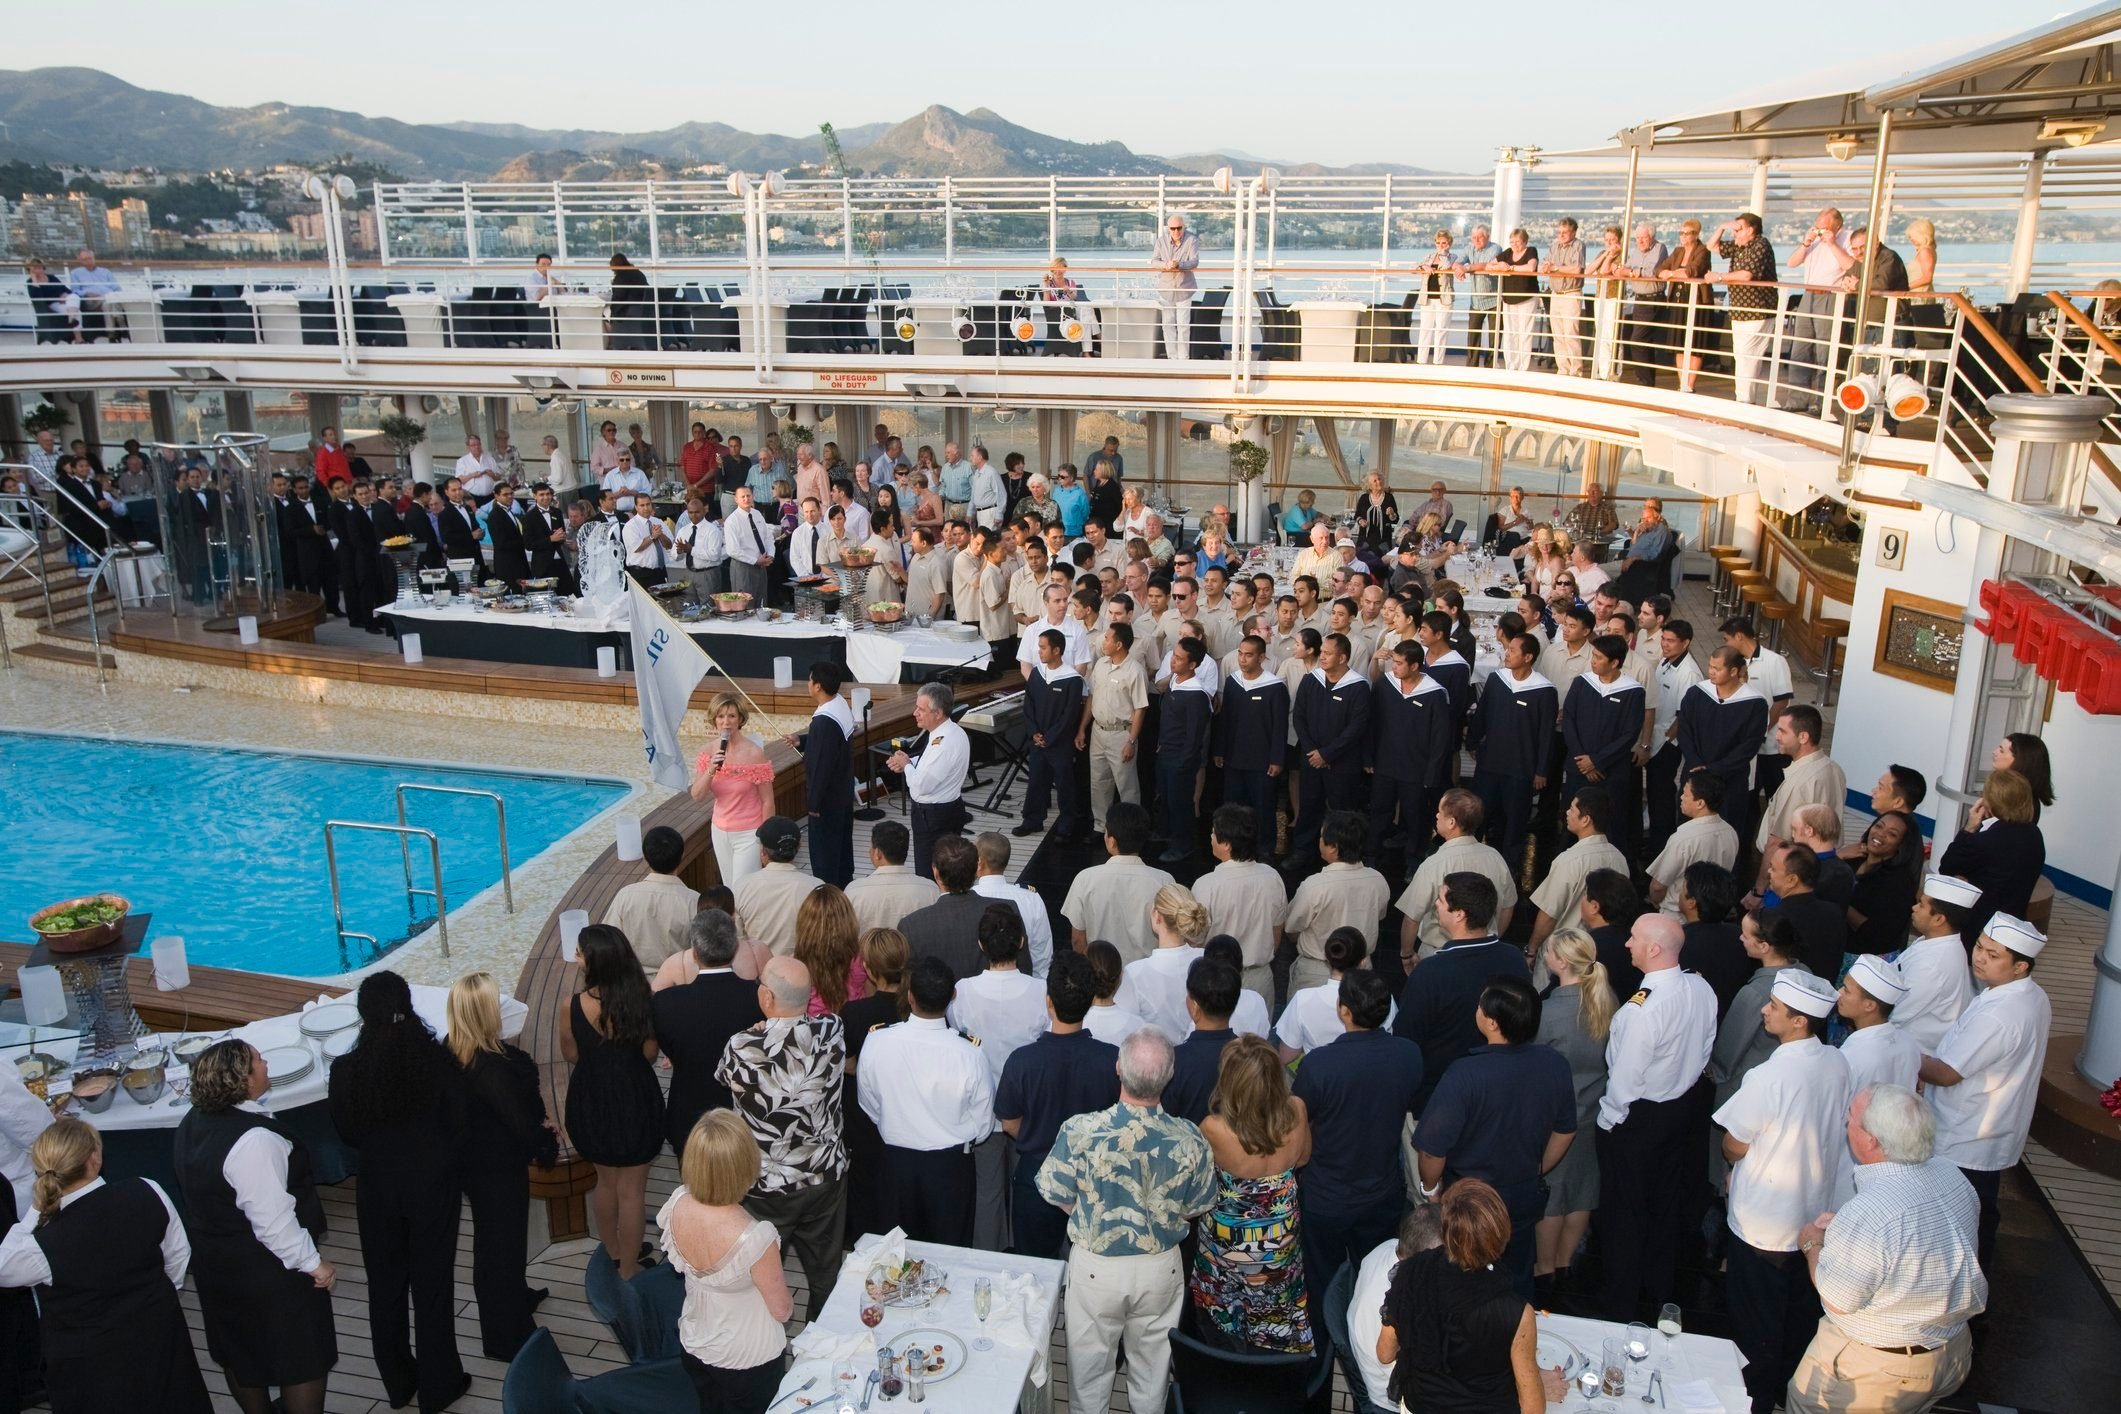 Crew being introduced during pool deck barbecue aboard cruiseship Silver Spirit (Silversea Cruises).